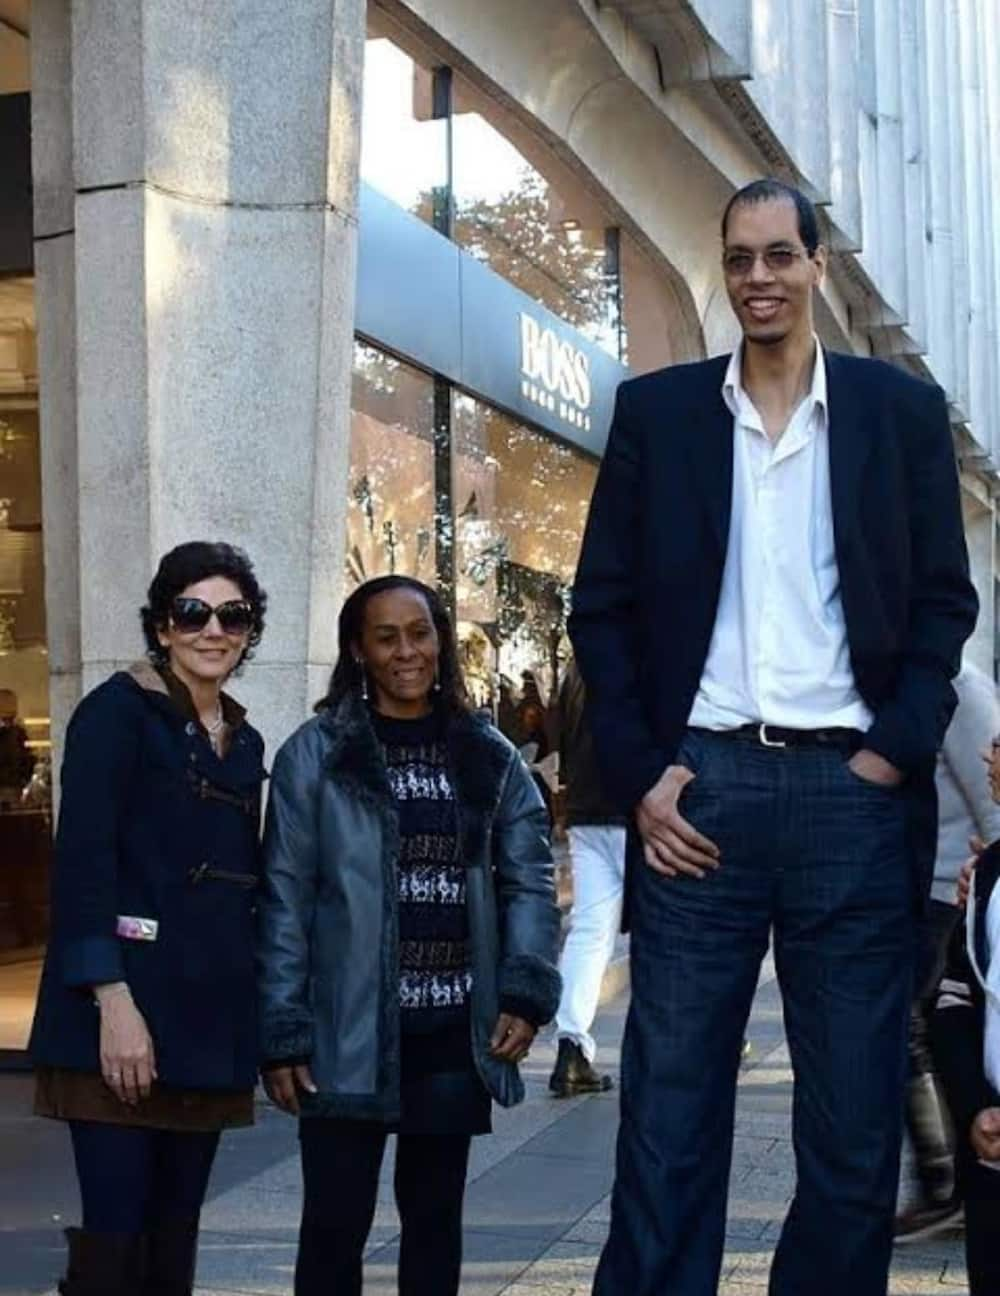 Here's the world's second tallest living man